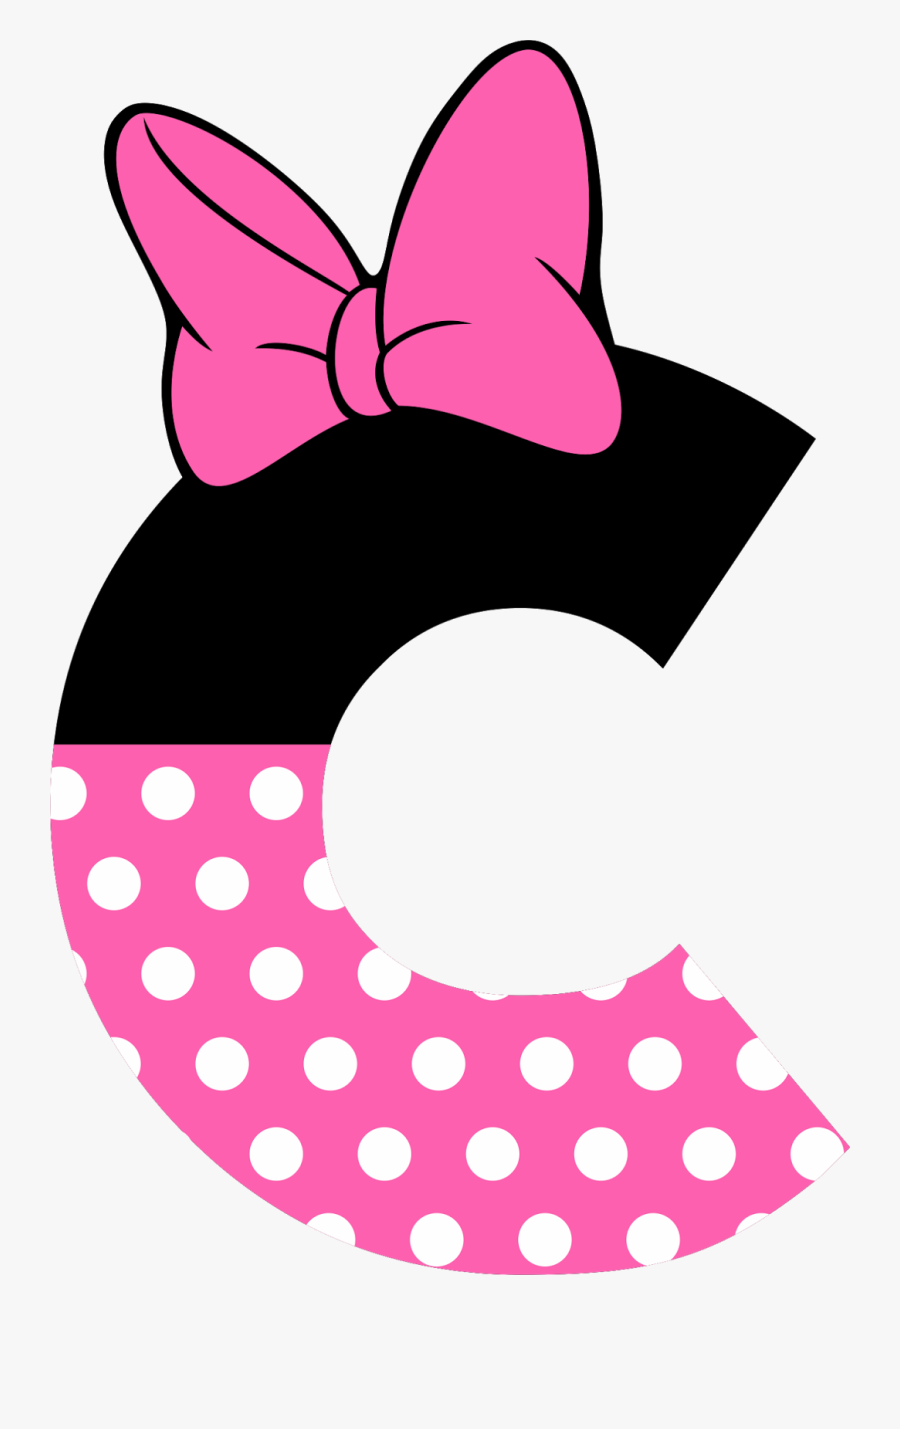 Minnie Mouse Pink Bow Png - Minnie Mouse Letters, Transparent Clipart